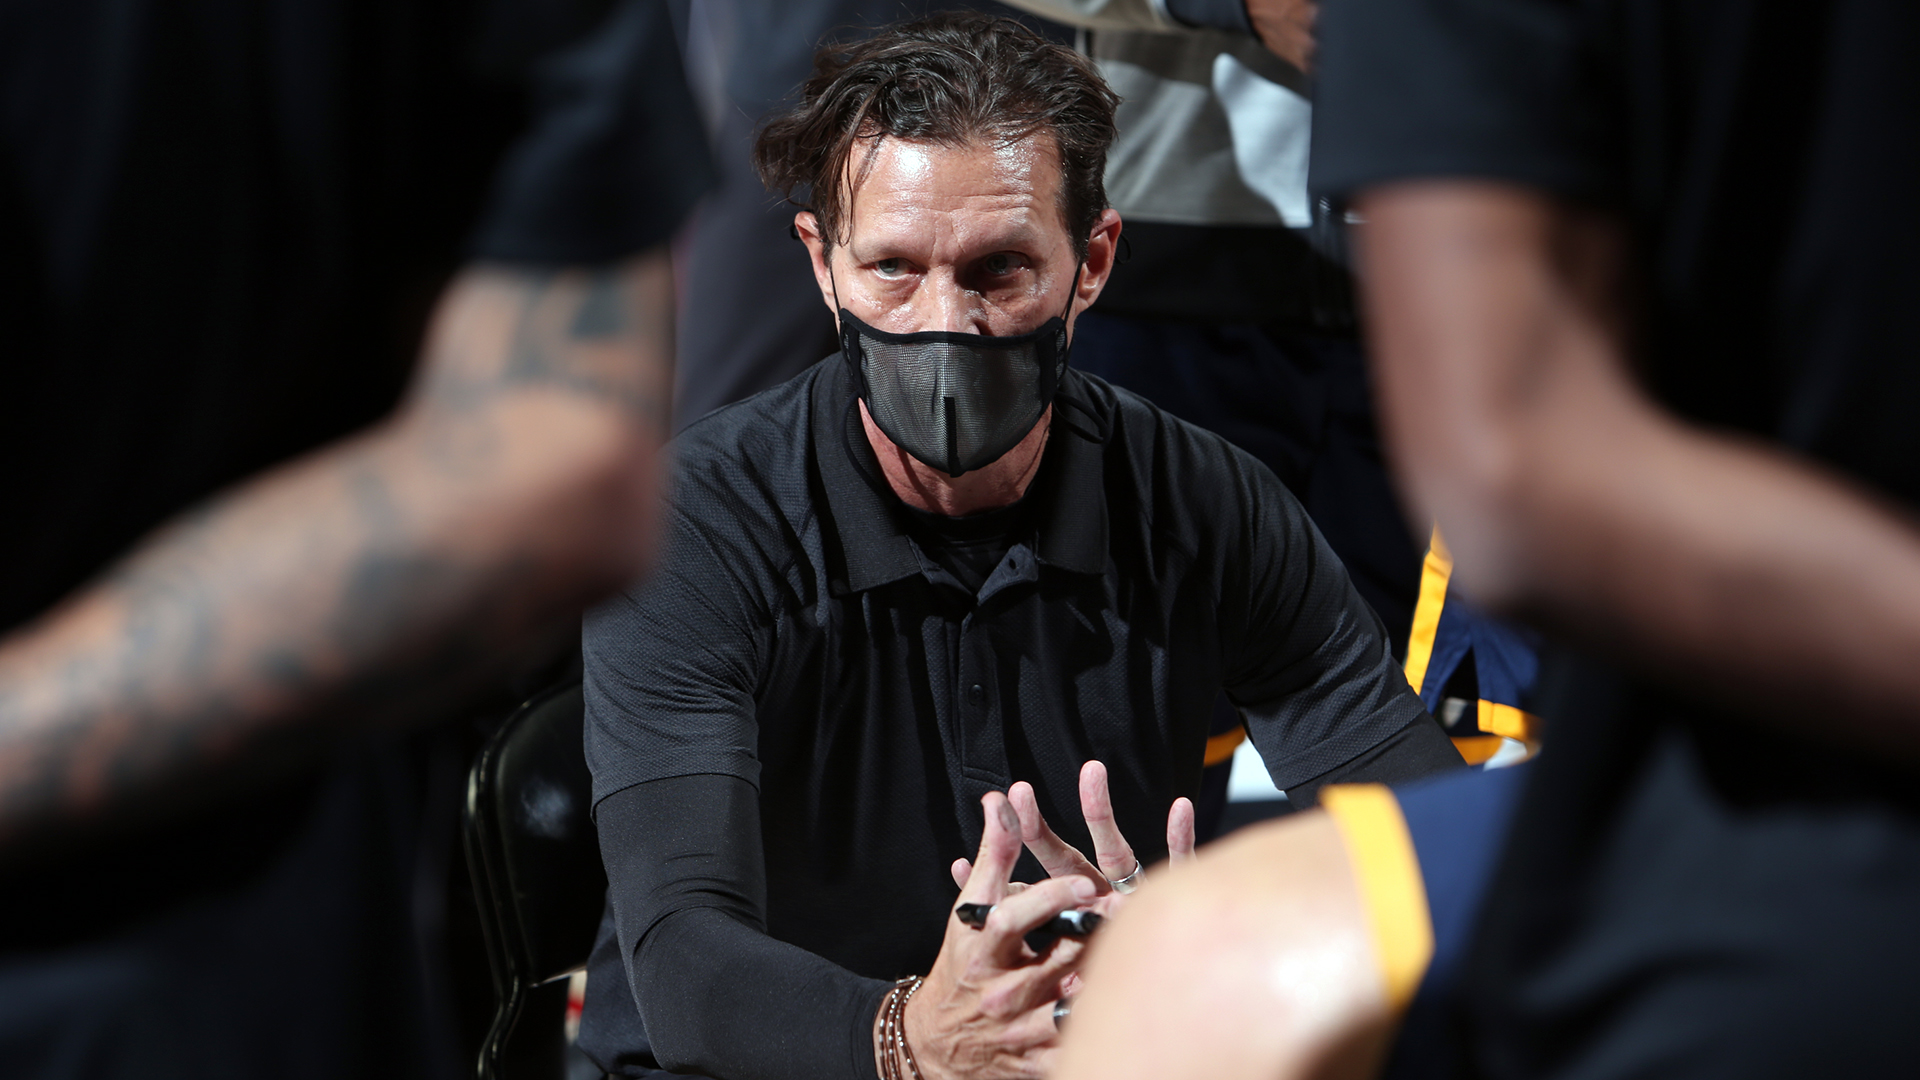 Utah's Quin Snyder earns spot as coach of Team LeBron in 2021 NBA All-Star Game